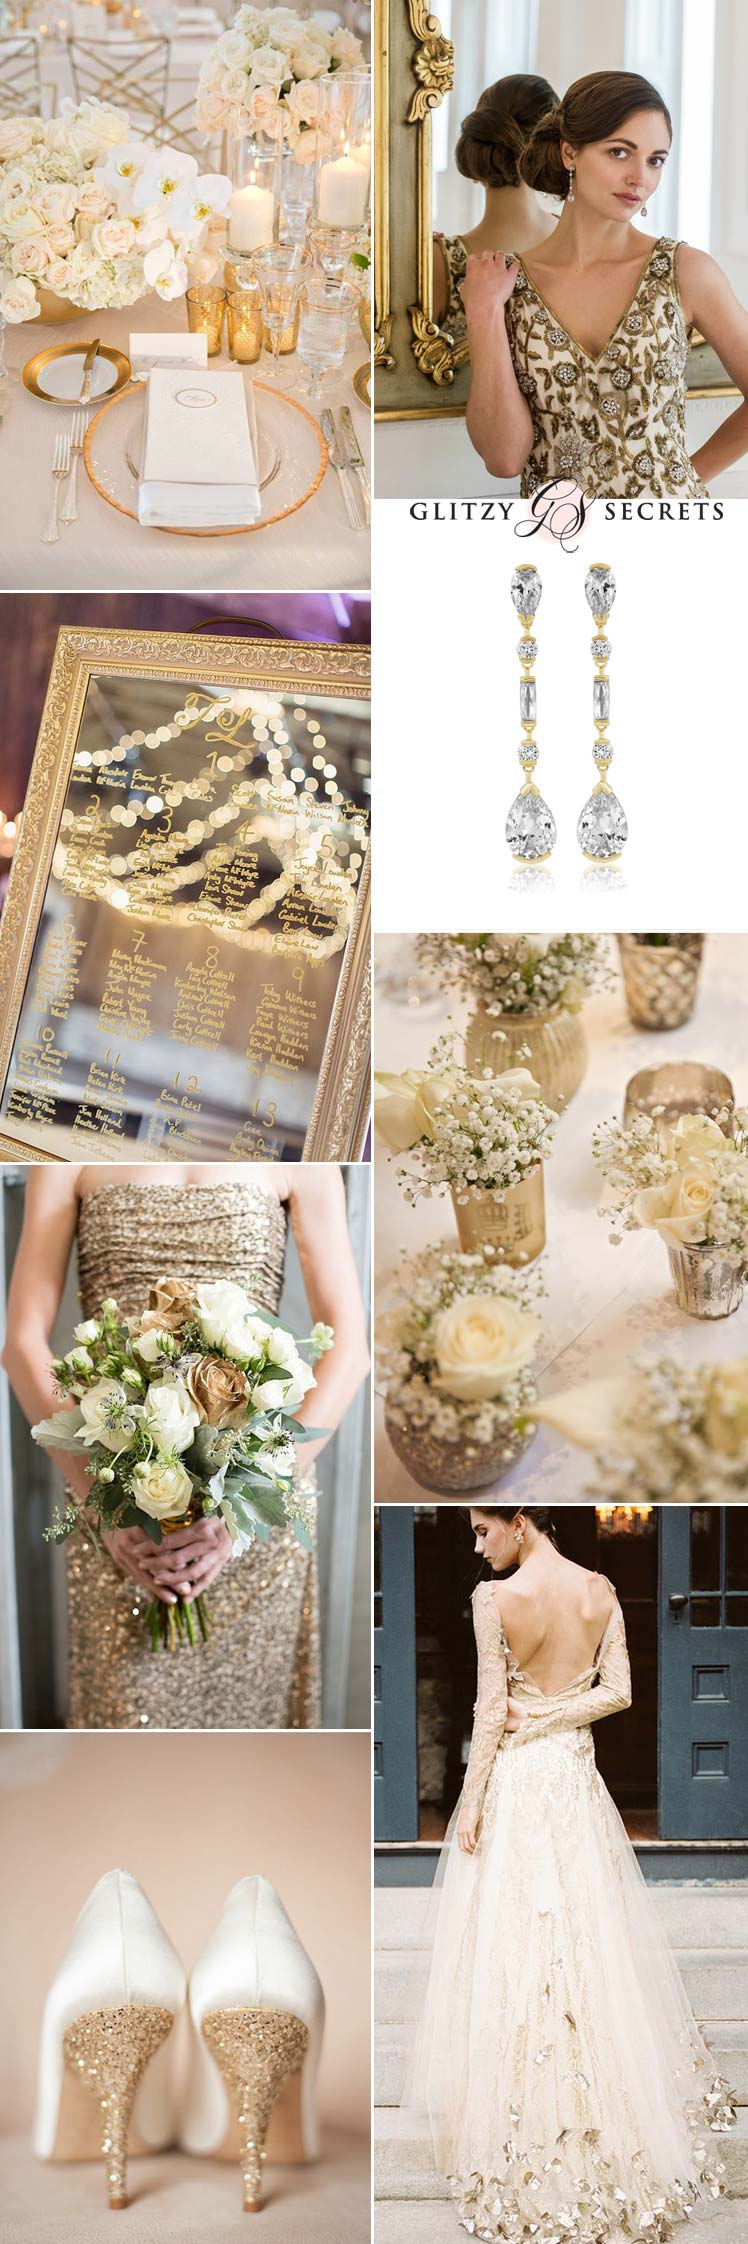 a luxurious wedding theme of cream and gold